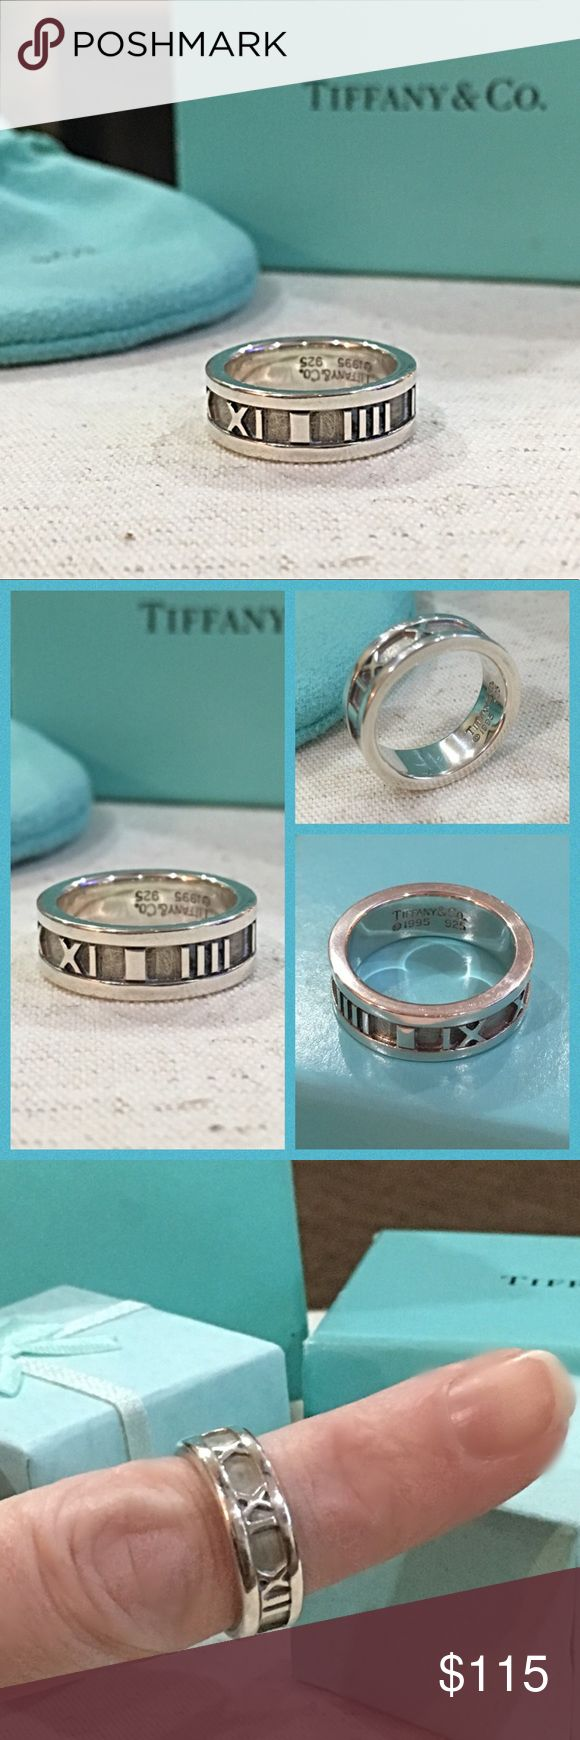 Authentic Tiffany & Company Atlas Ring This is a beautiful authentic Tiffany & Company Ring in excellent vintage condition. There are mild scratches from normal wear. Size 4.75- 5. Comes with Tiffany & Company Pouch.   Tiffany & Company's signature Roman numerals are the ageless artifacts of a great civilization and its elevated concept of time. Tiffany streamlines these classic symbols of empire in elegant jewelry that is emblematic of American design, recognizably sleek and modern! Tiffany…